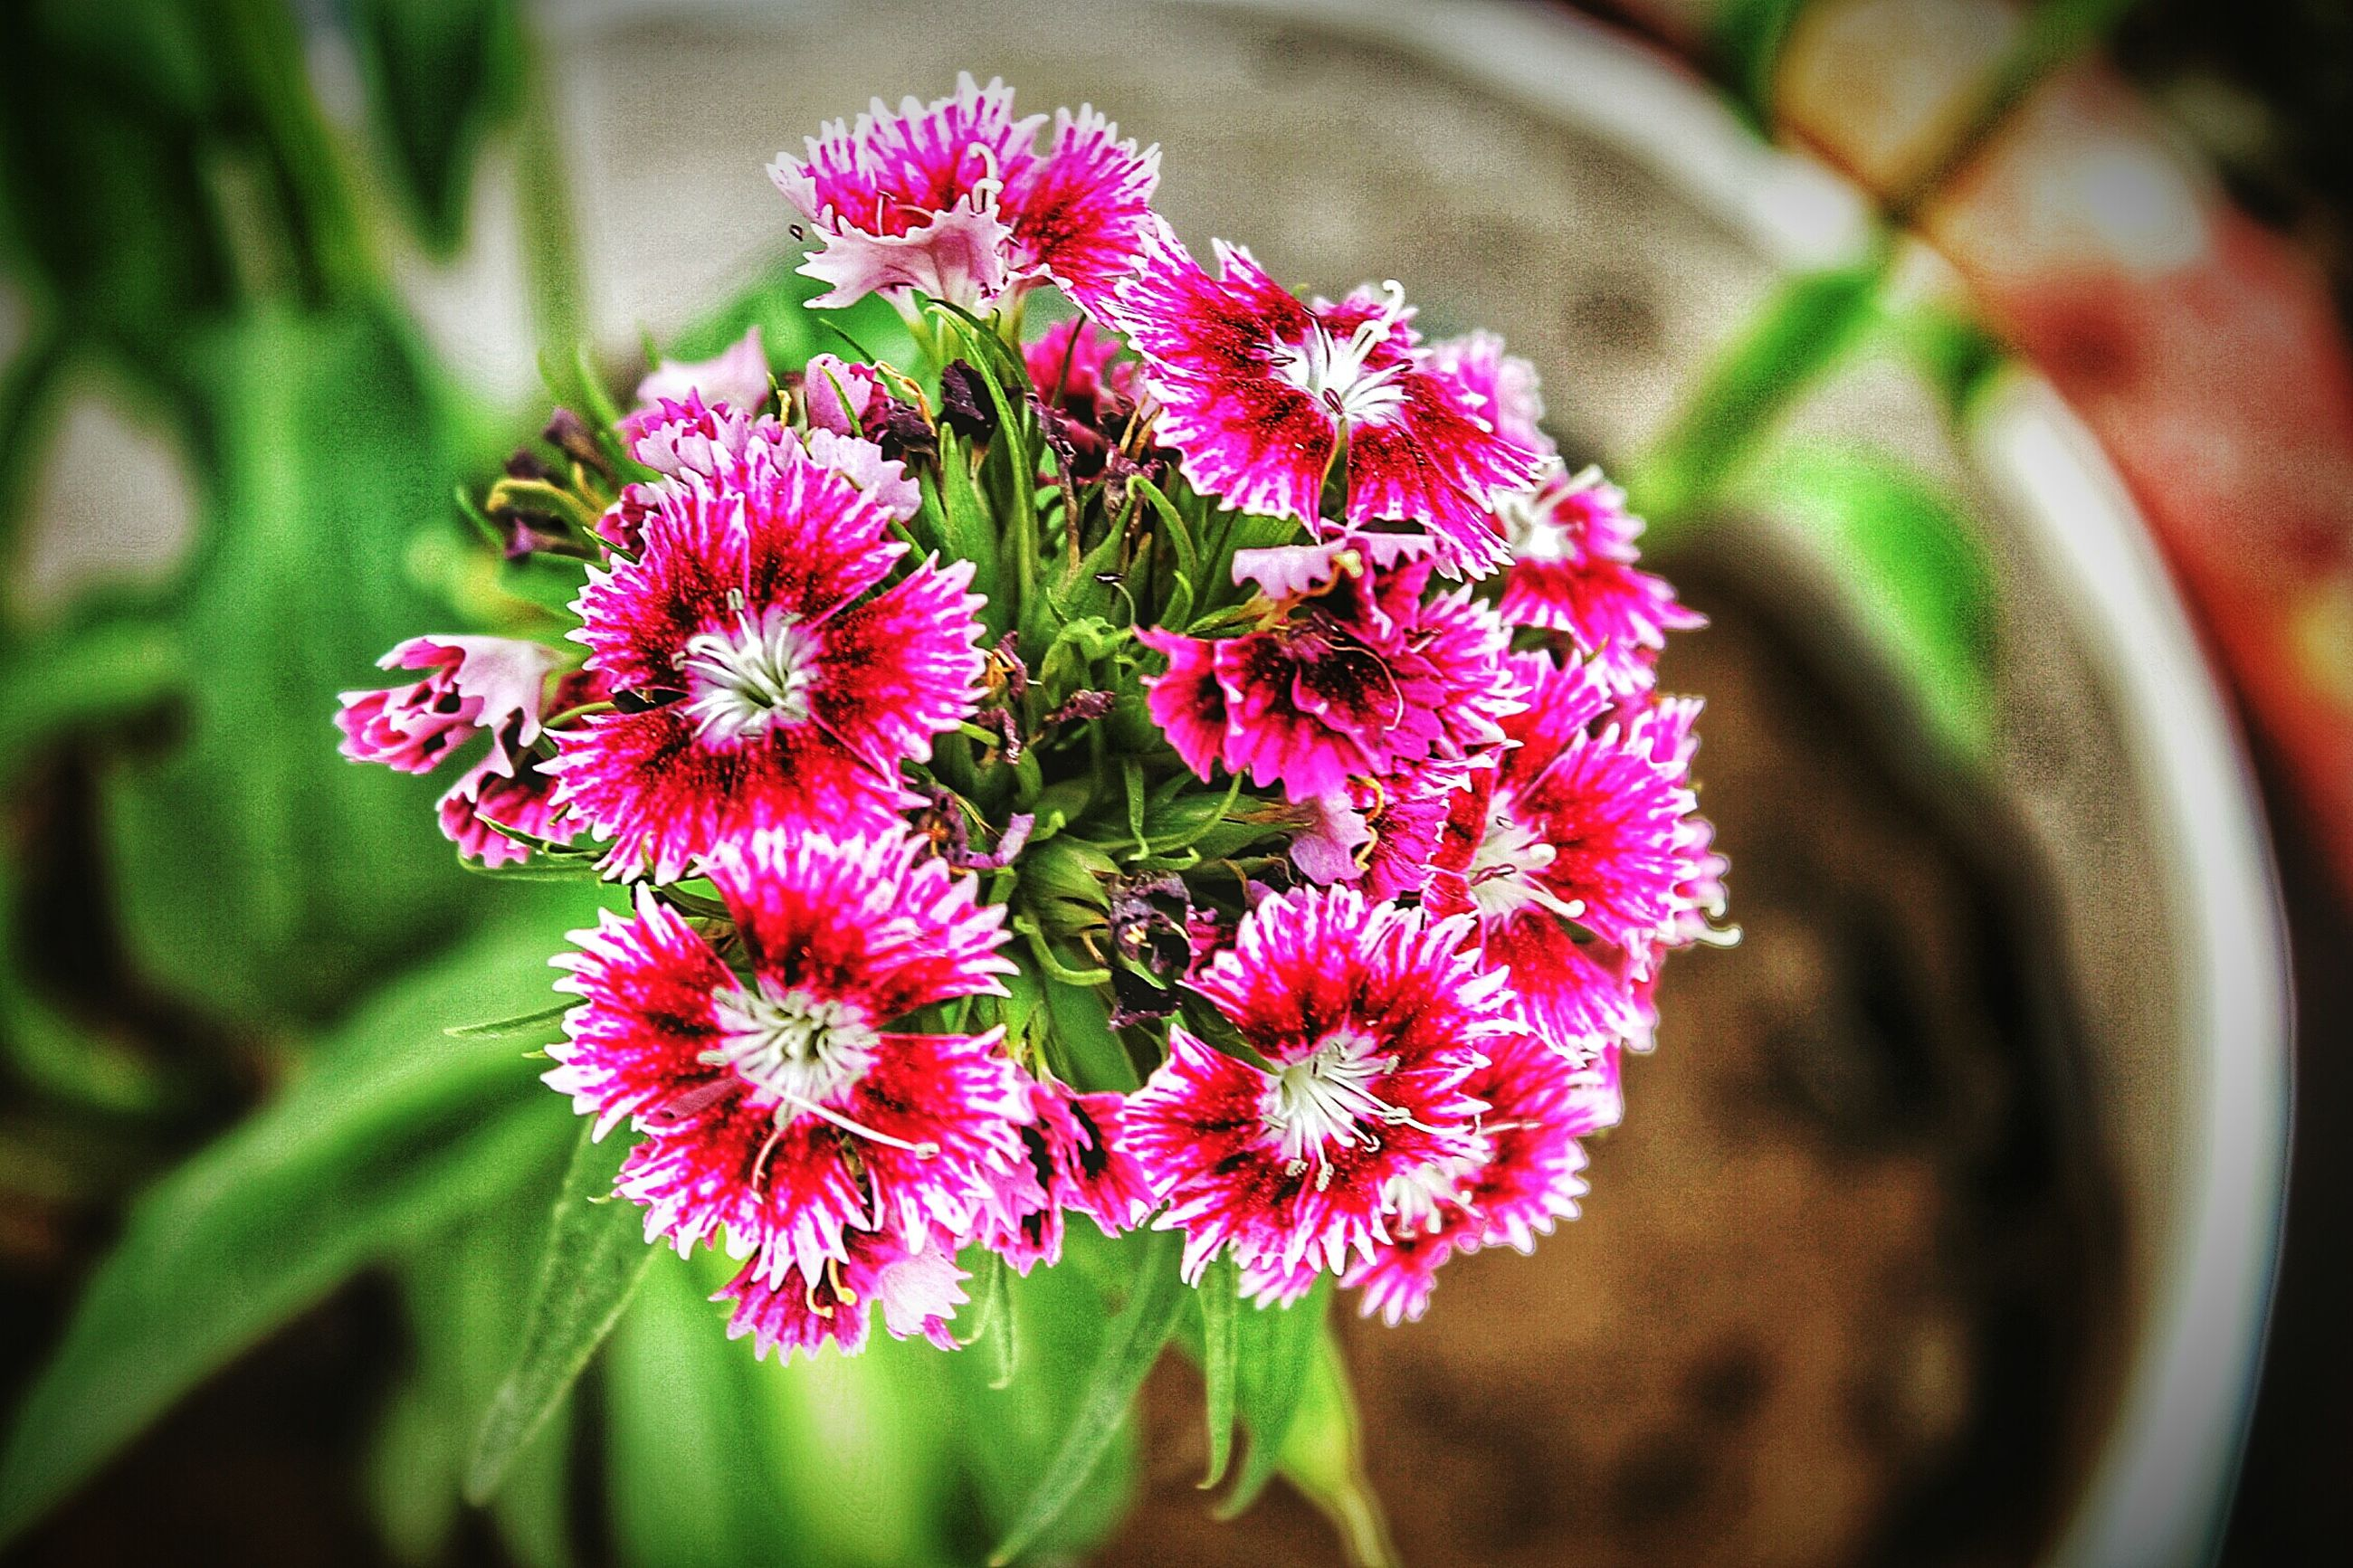 flower, freshness, petal, fragility, growth, focus on foreground, flower head, beauty in nature, pink color, close-up, plant, nature, blooming, in bloom, selective focus, botany, day, outdoors, red, bud